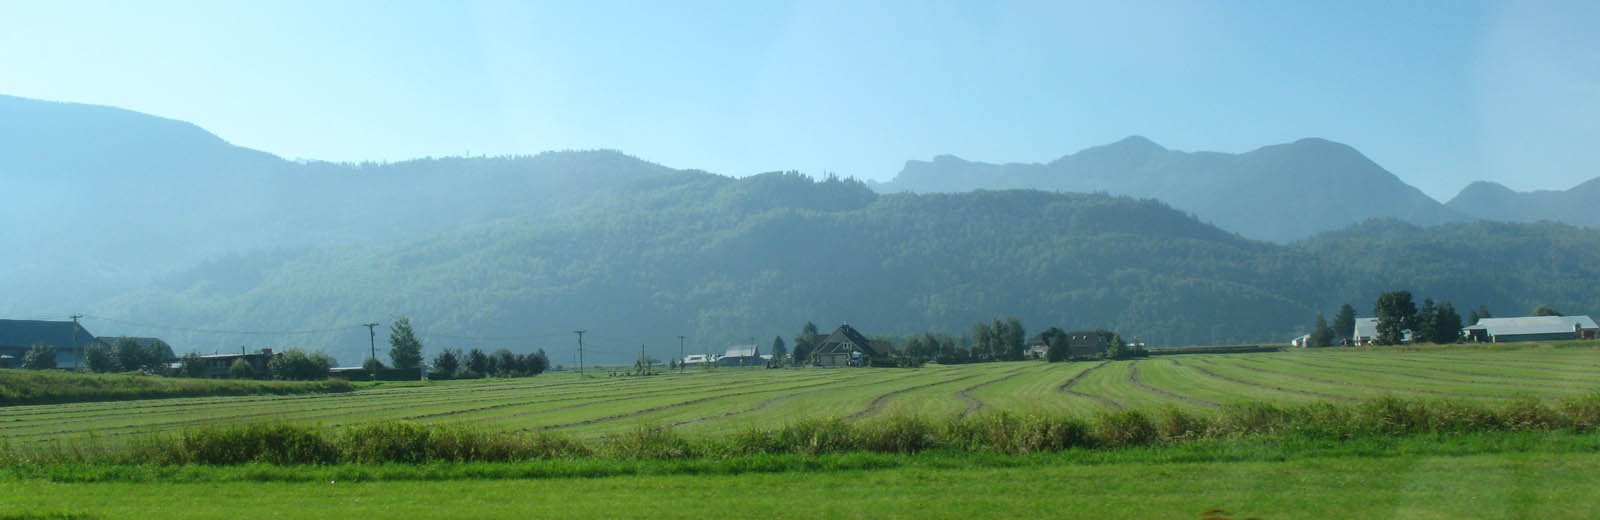 Chilliwack - Trans-Canada Highway - Farm Fields South To Mountains -sliver